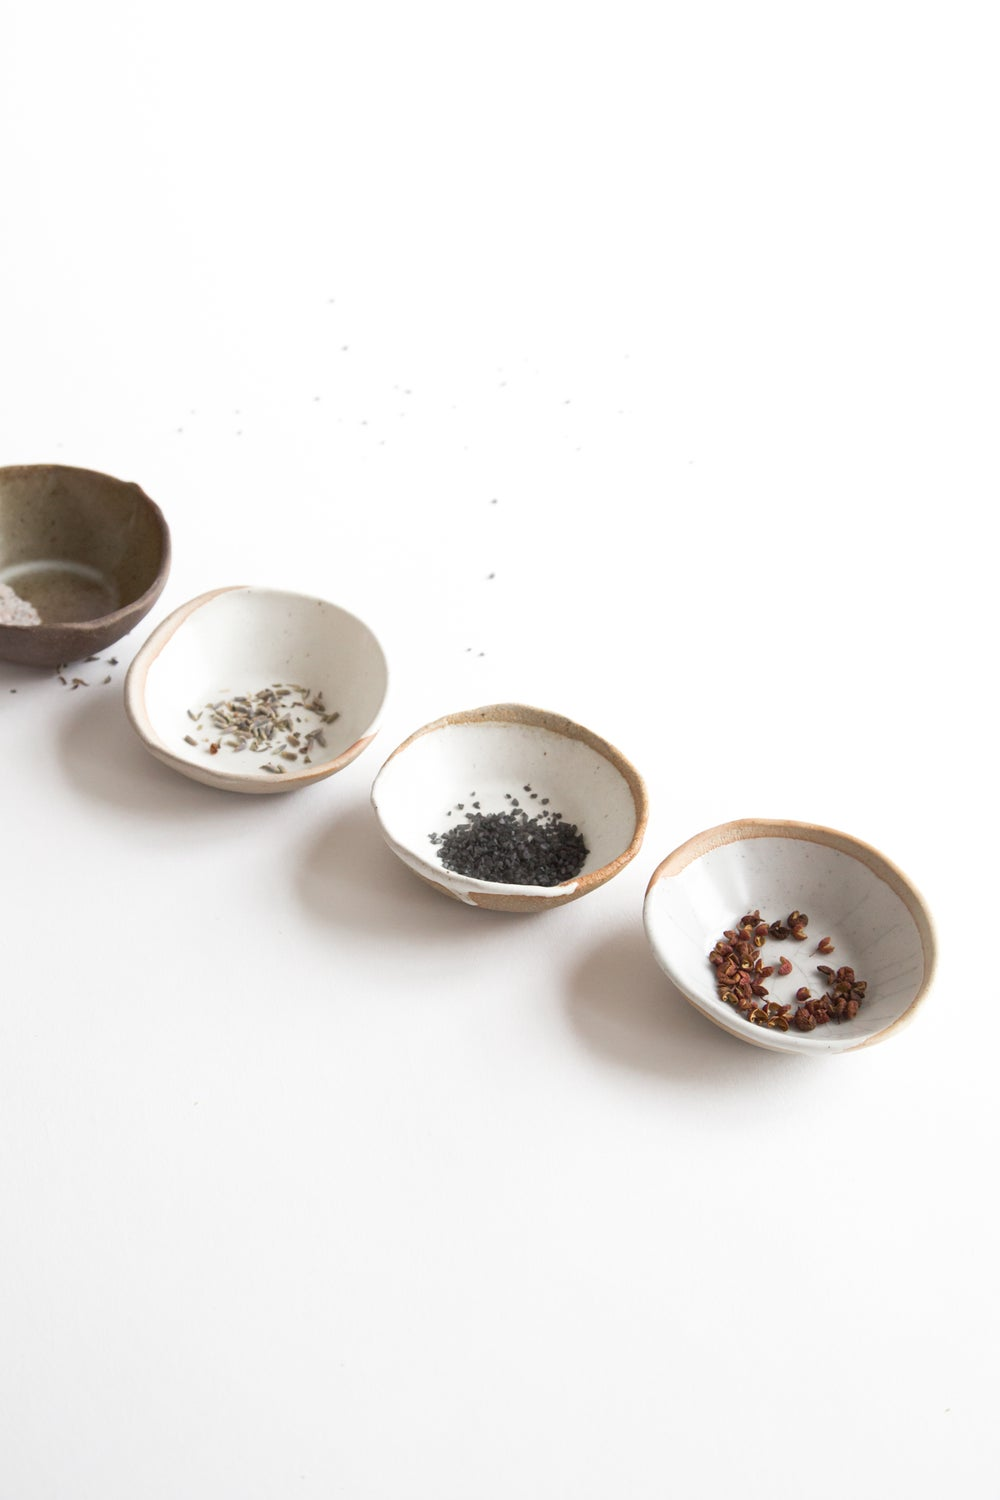 Image of Little Dishes